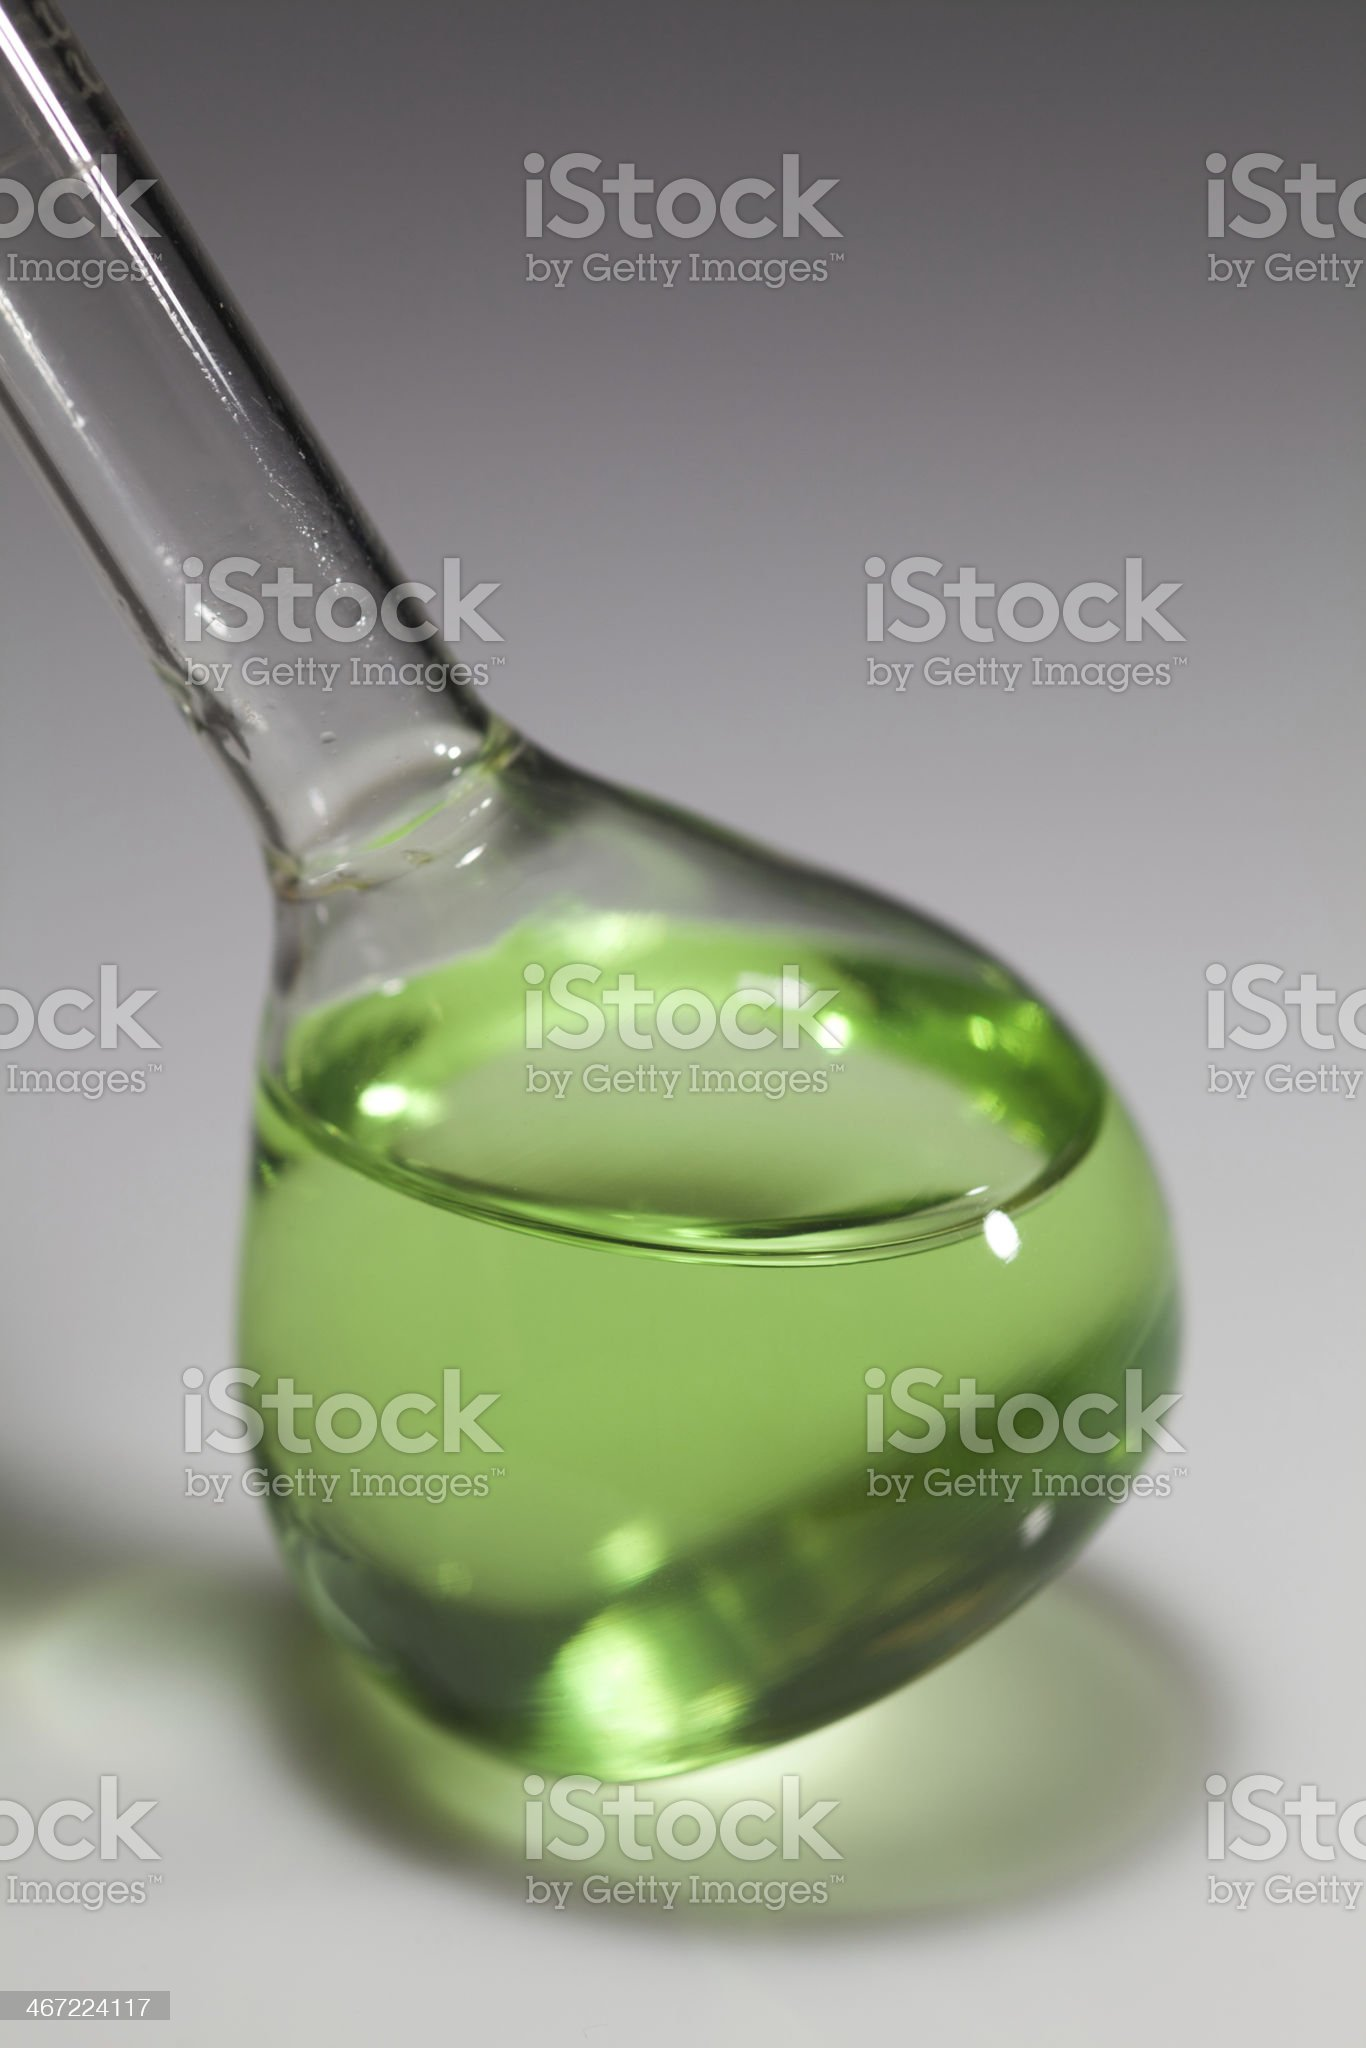 Macro image of chemical test-tube filled with green liquids royalty-free stock photo